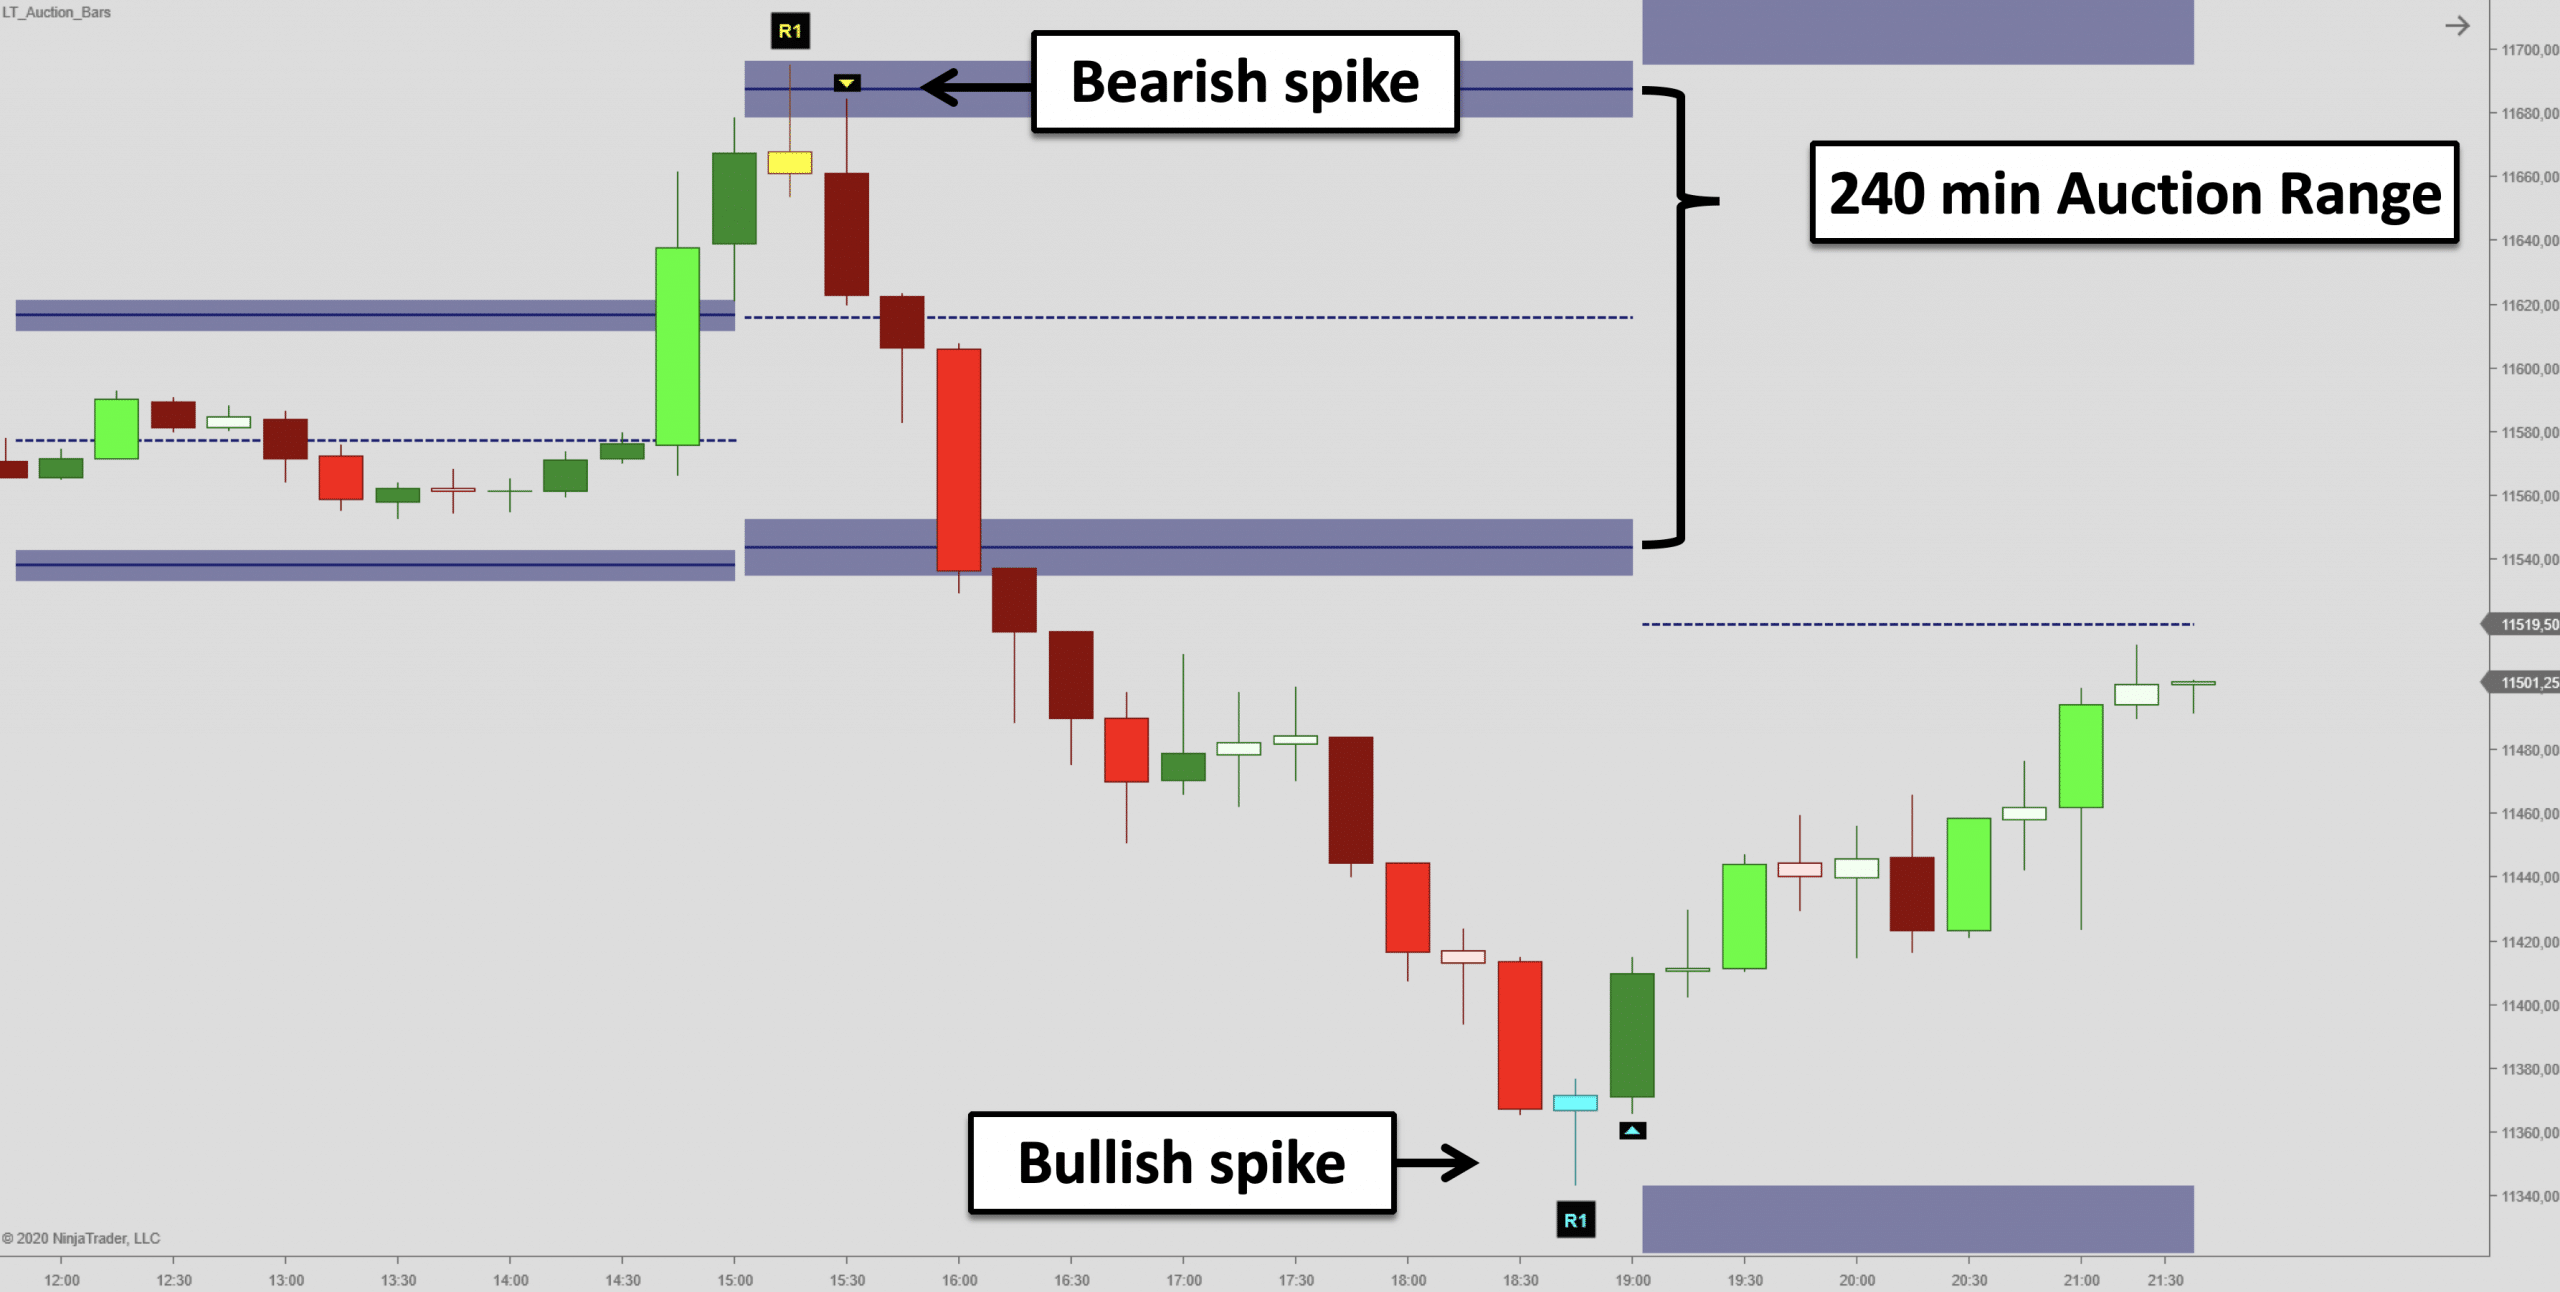 Candlestick reversal patterns with higher timeframe ranges